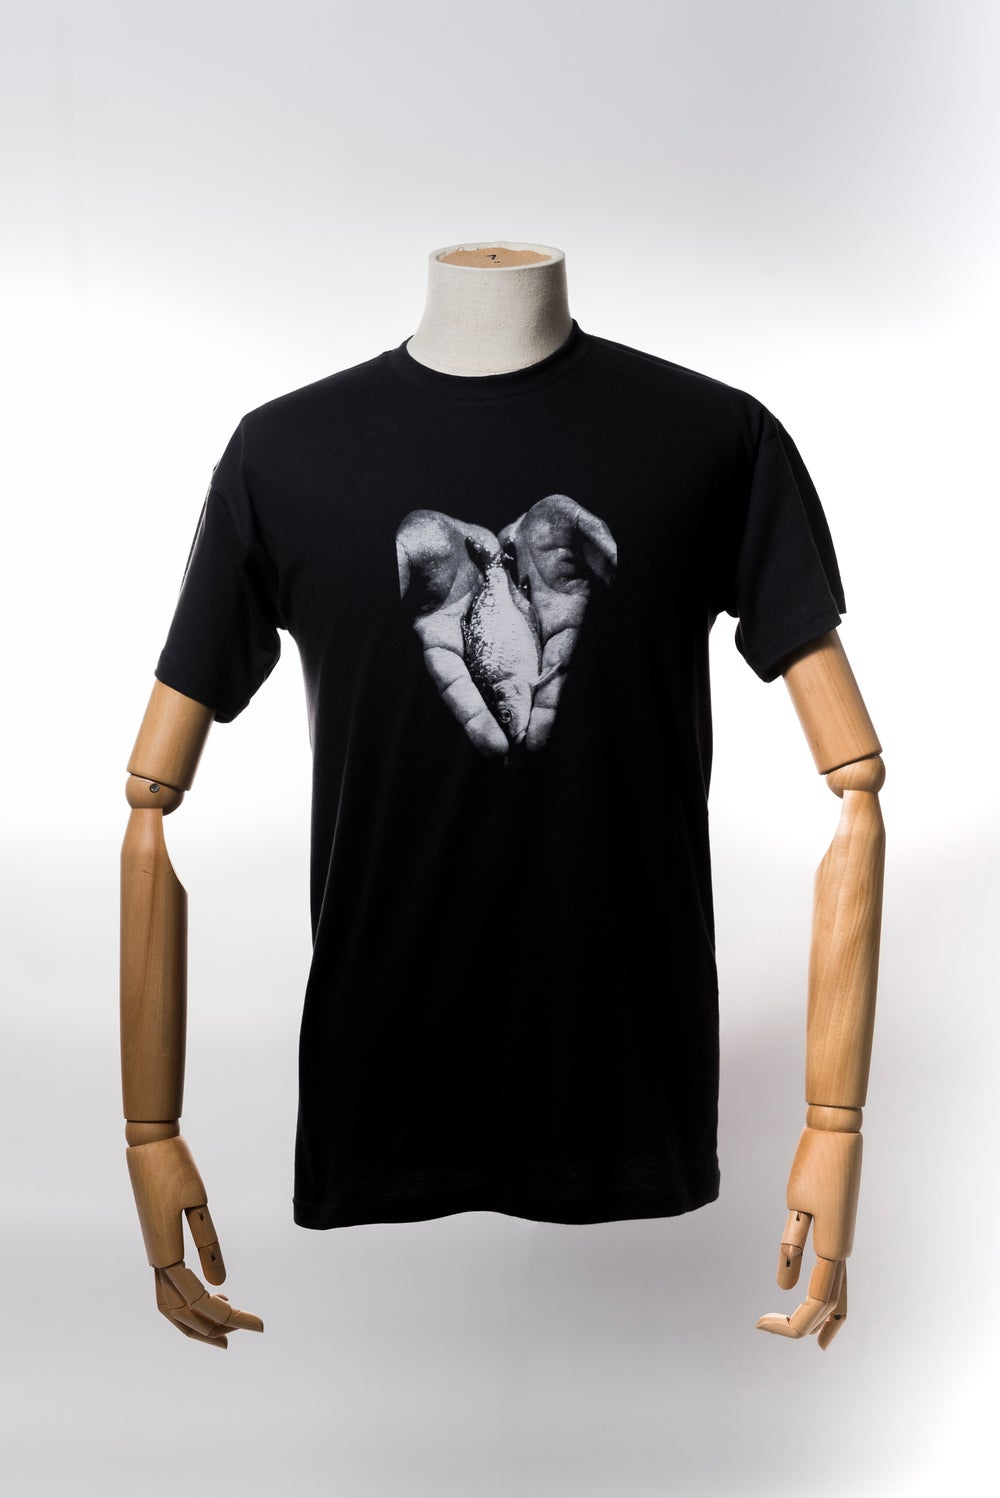 Image of Monkey Climber Hand of Hope shirt I Used Black - Used Burgundy